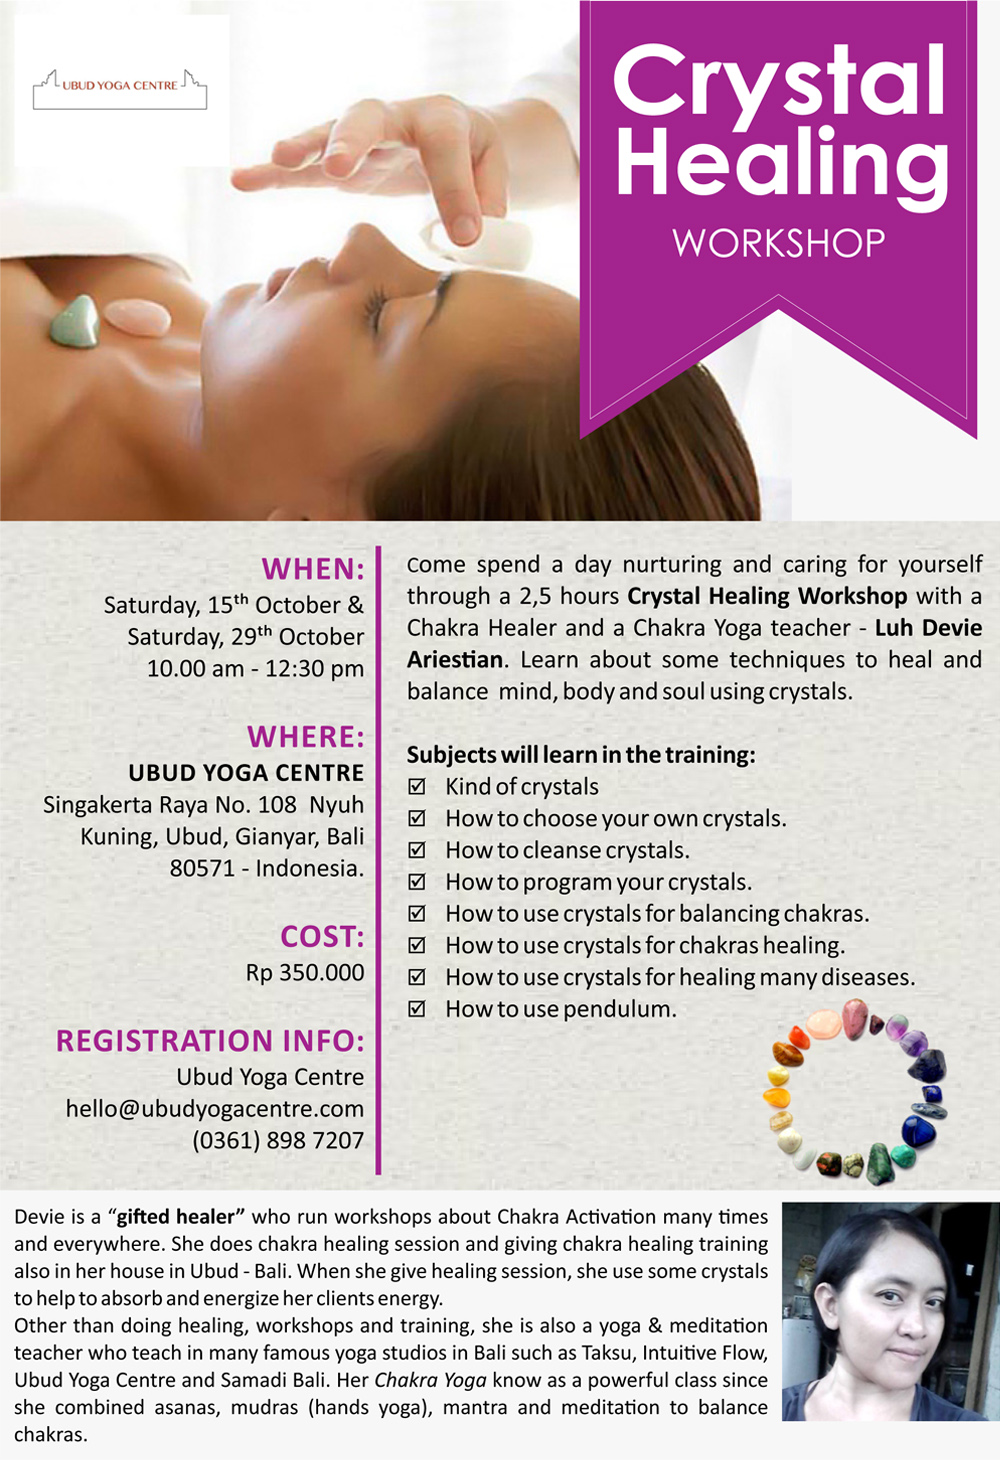 ubudyogacentre-crystal-healing-workshop